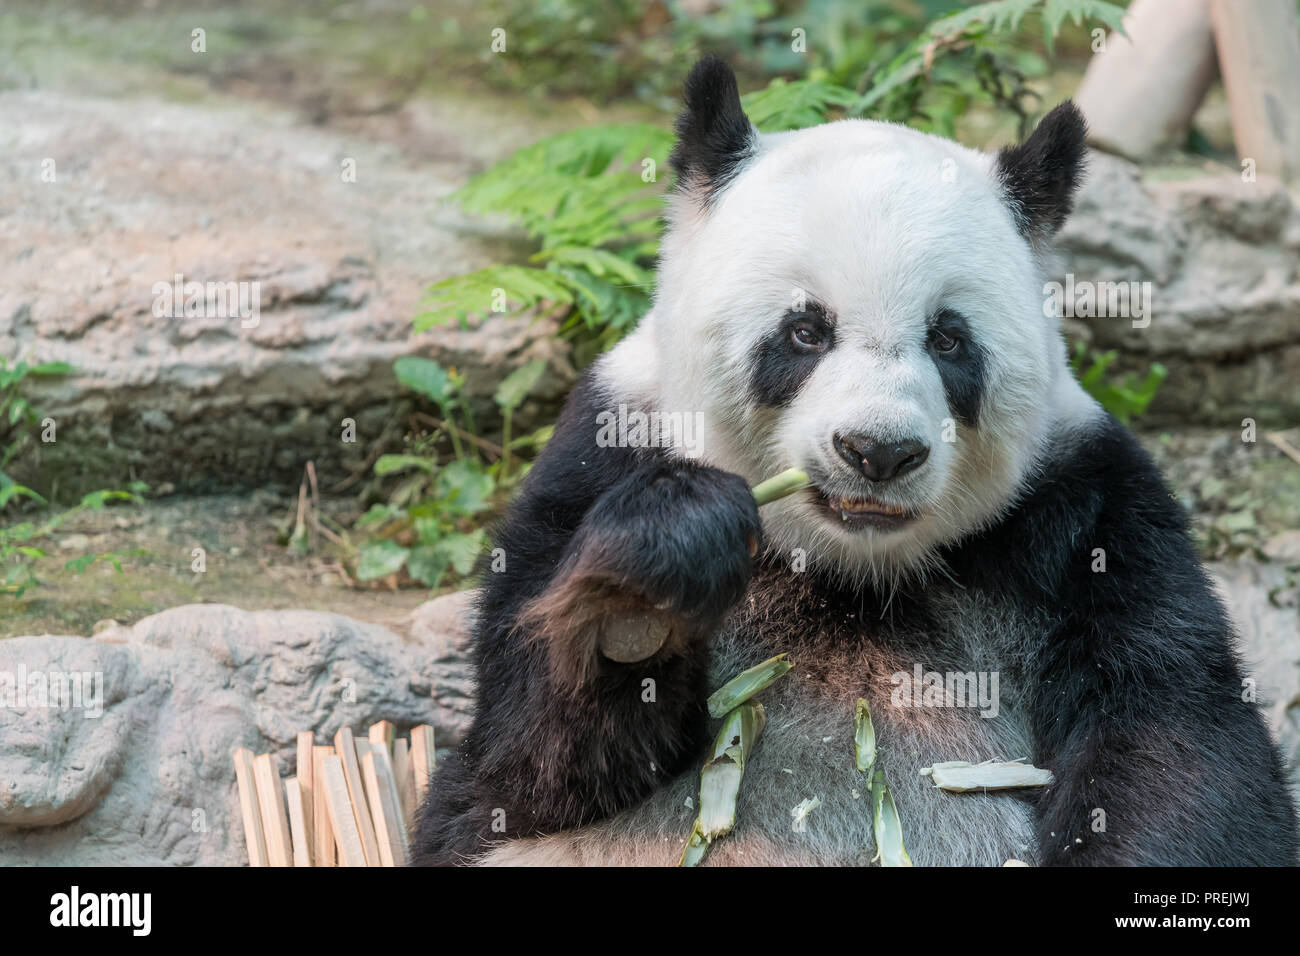 A female giant panda bear enjoy her breakfast of well selected young bamboo shoots and bamboo sticks with cute different eating gestures. - Stock Image